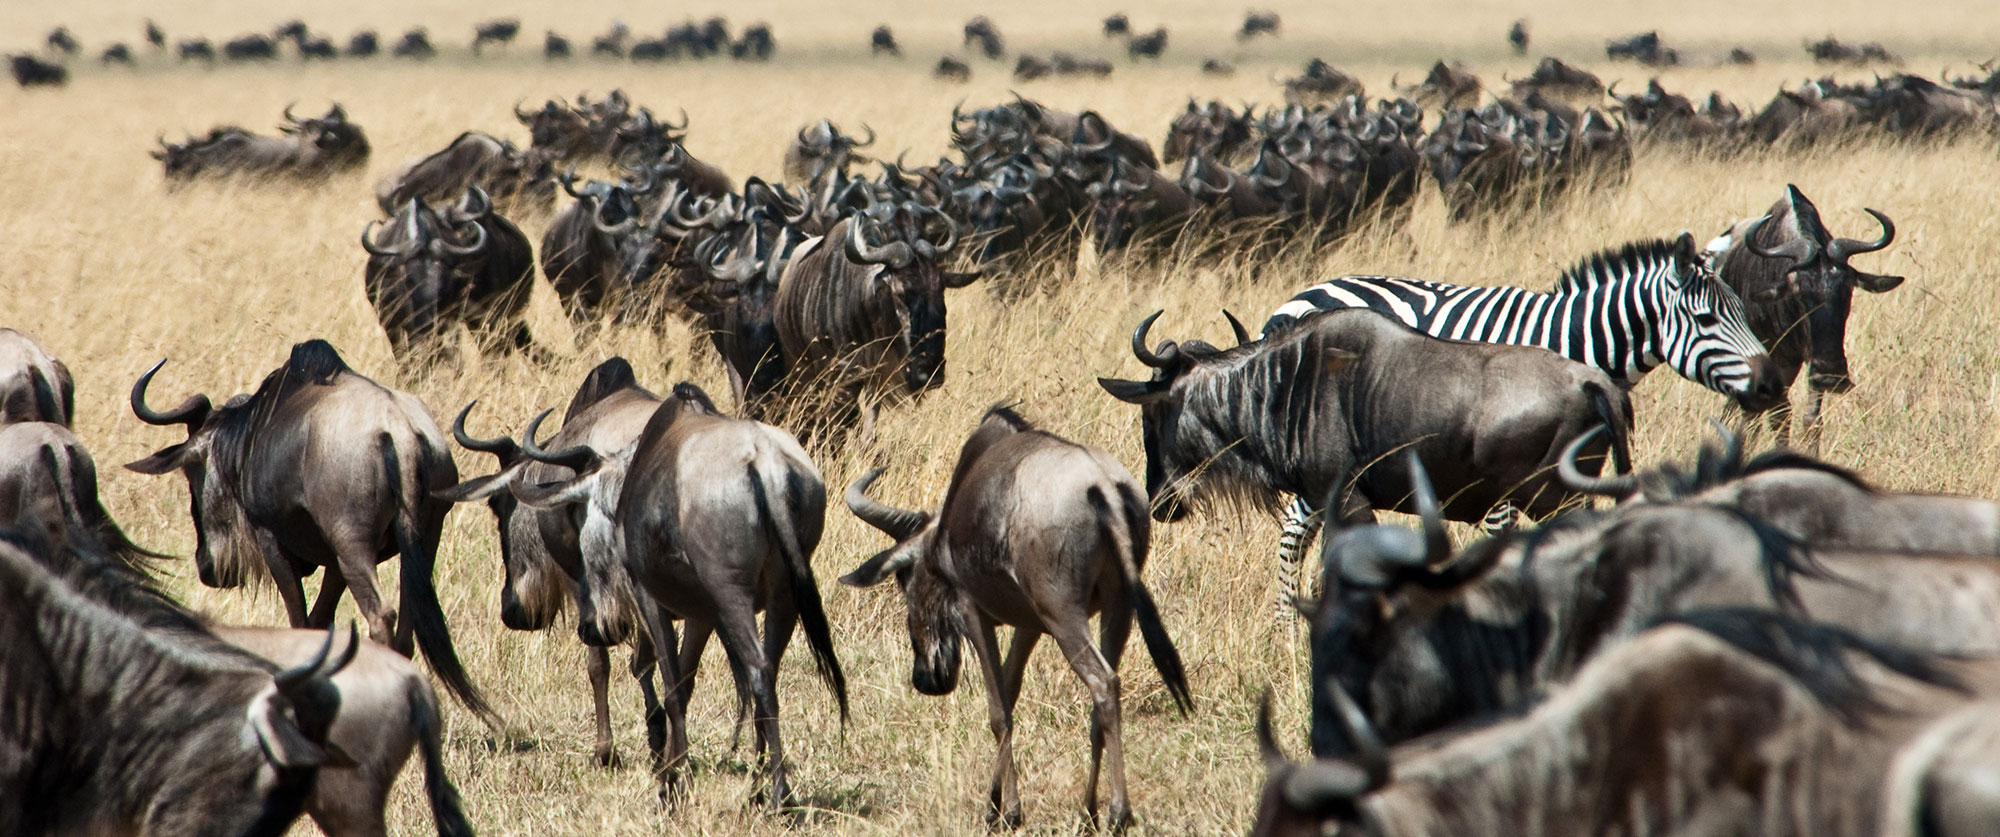 Karen Blixen Camp Kenya - Wildebeest Great Migration